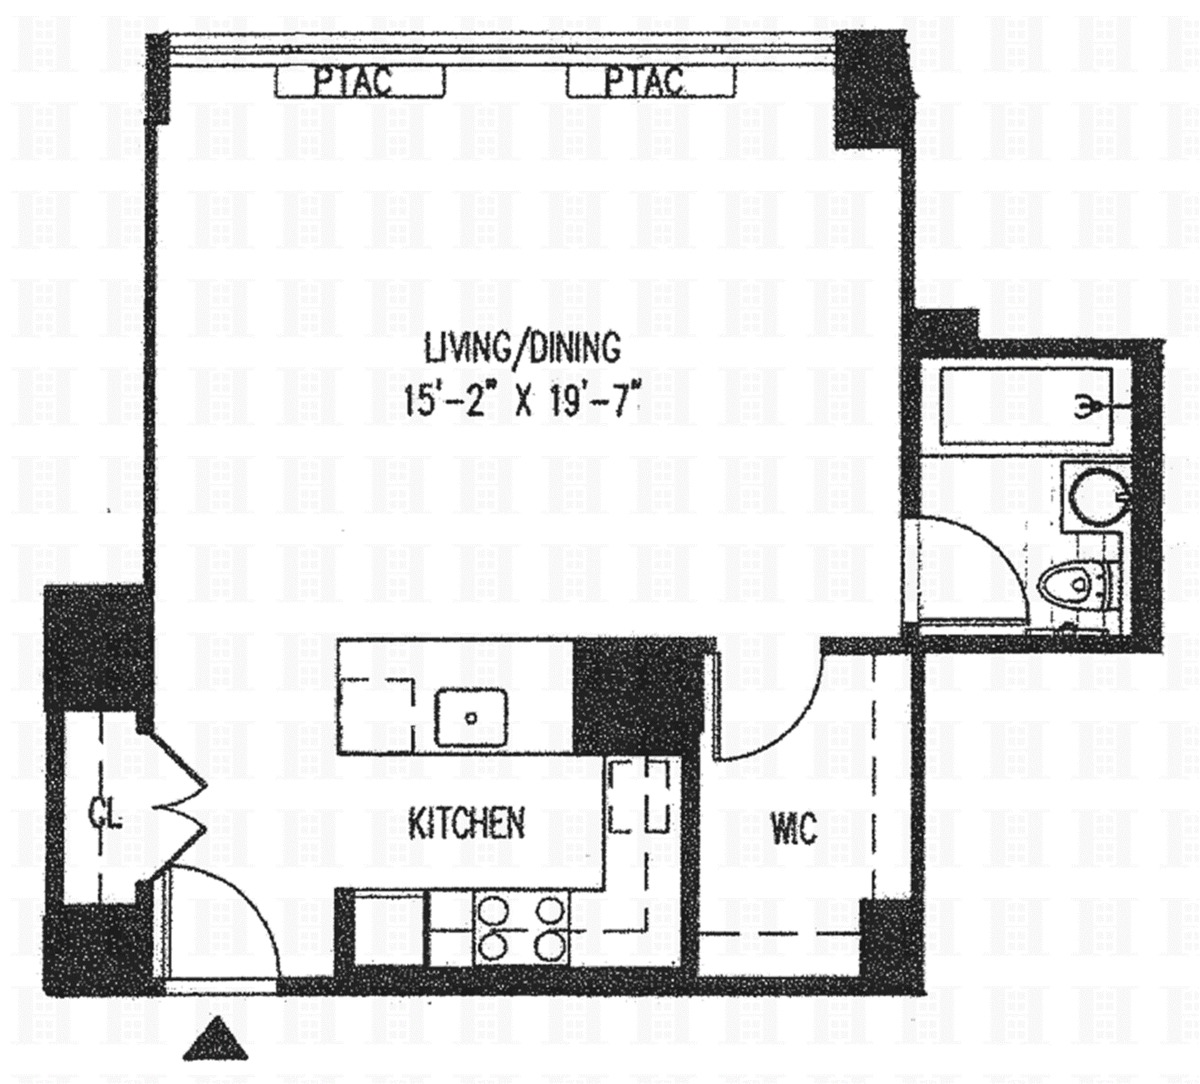 24 Manhattan Apartment Floor Plans The 11 Most: The Sheffield - 322 West 57th St - NYC